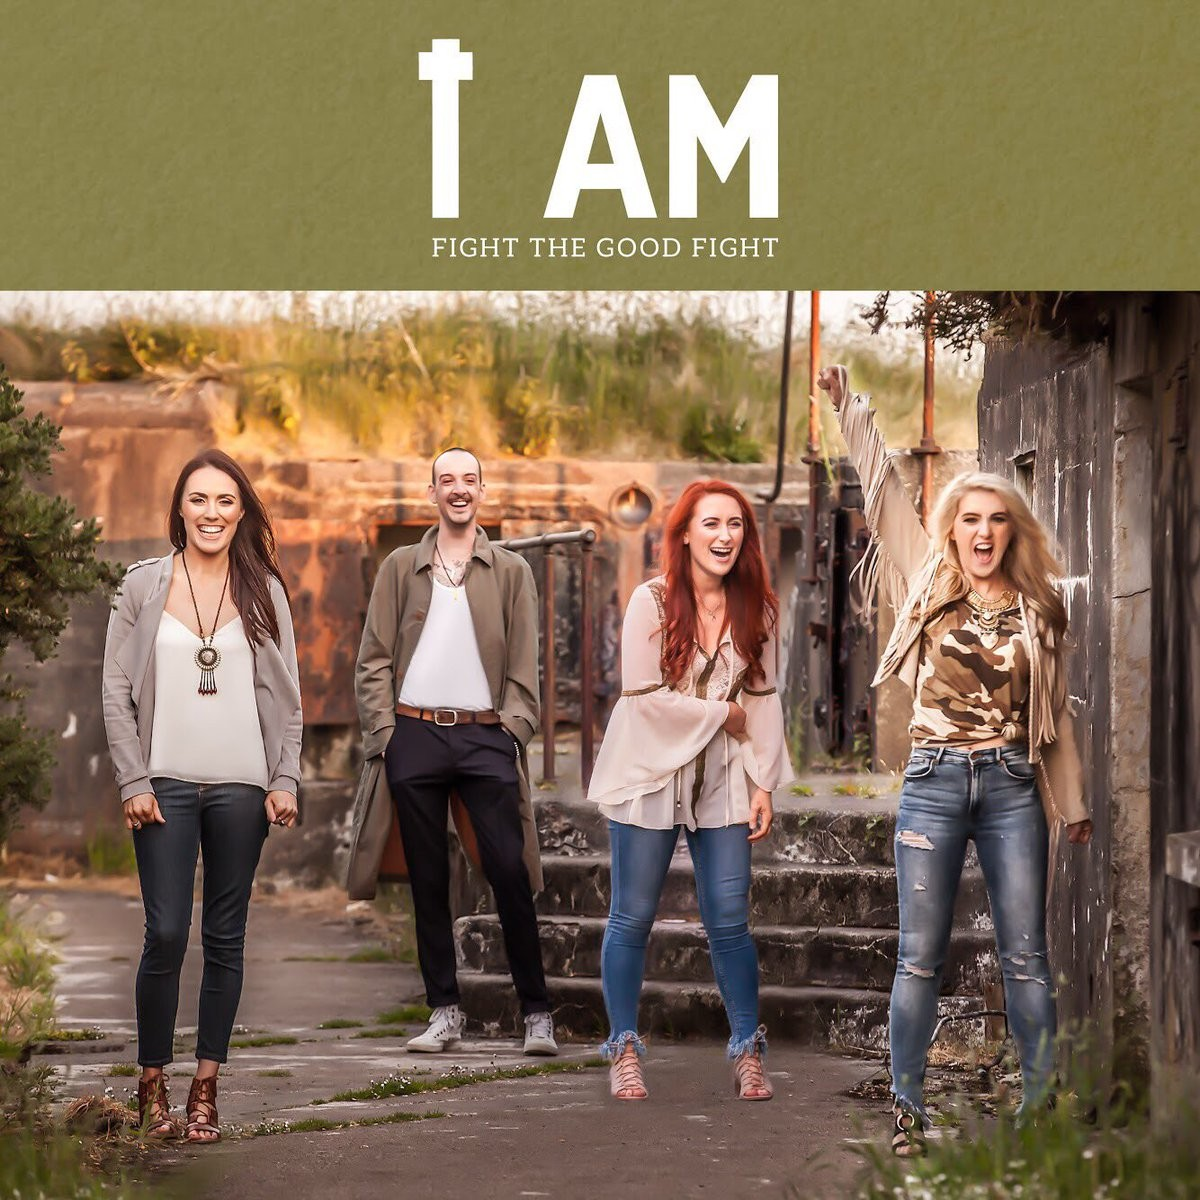 Derry's 'I Am' launch debut album - Sunday 23rd September - Millenium Forum